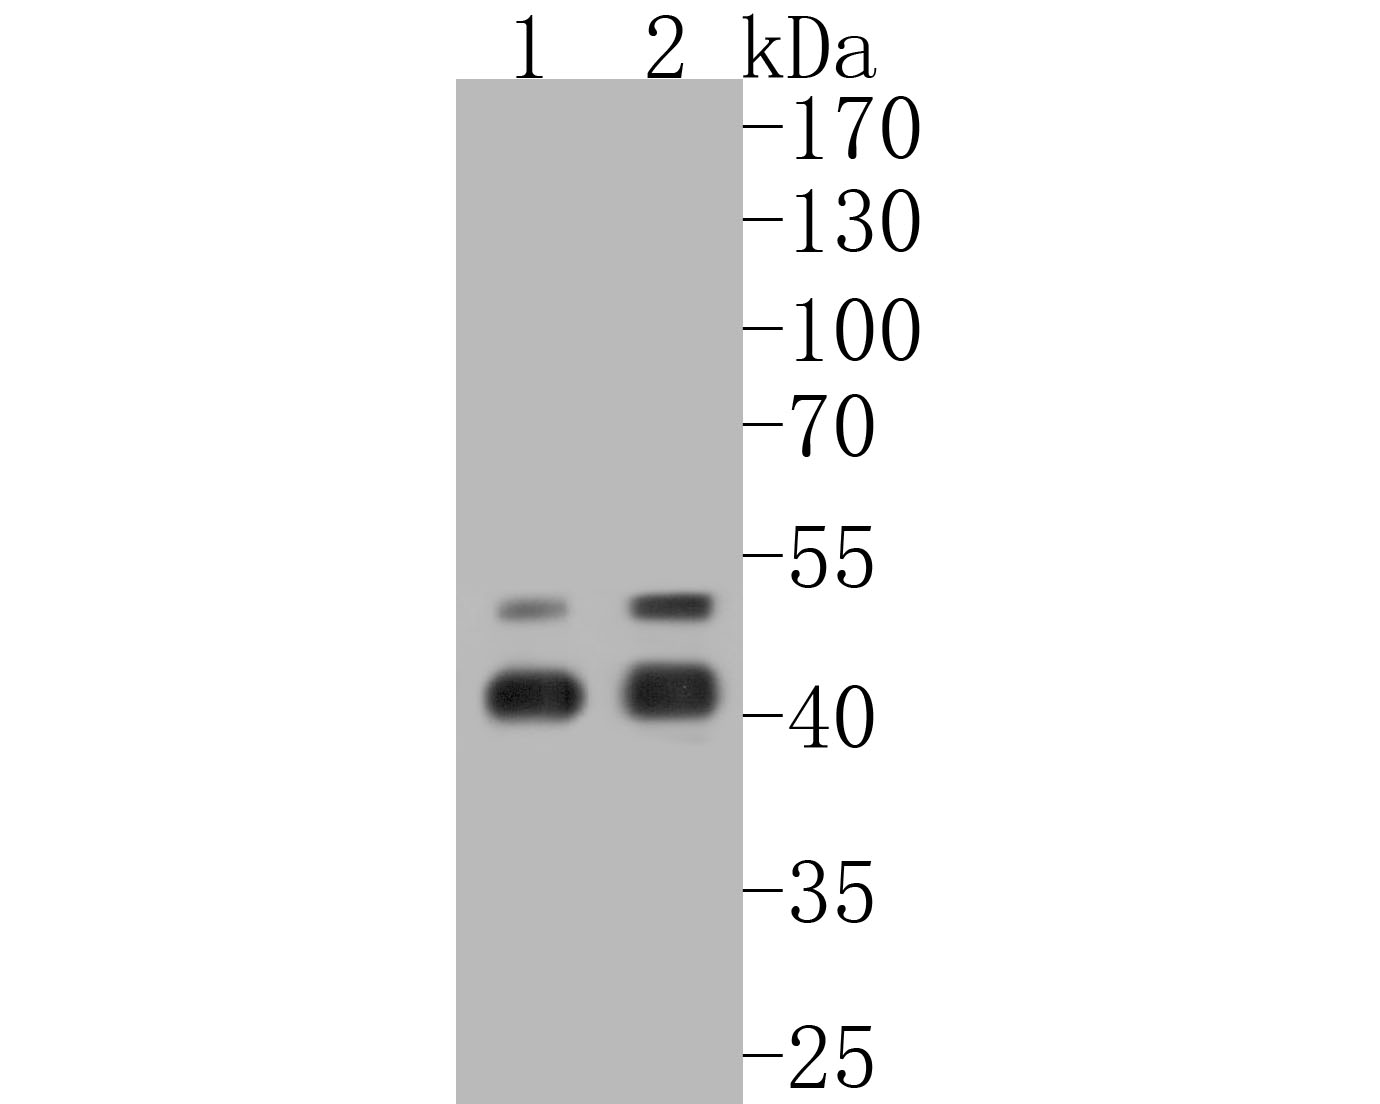 Western blot analysis of Caspase-1 on different lysates. Proteins were transferred to a PVDF membrane and blocked with 5% BSA in PBS for 1 hour at room temperature. The primary antibody (ET1608-69, 1/500) was used in 5% BSA at room temperature for 2 hours. Goat Anti-Rabbit IgG - HRP Secondary Antibody (HA1001) at 1:5,000 dilution was used for 1 hour at room temperature.<br /> Positive control: <br /> Lane 1: THP-1 cell lysate<br /> Lane 2: Jurkat cell lysate